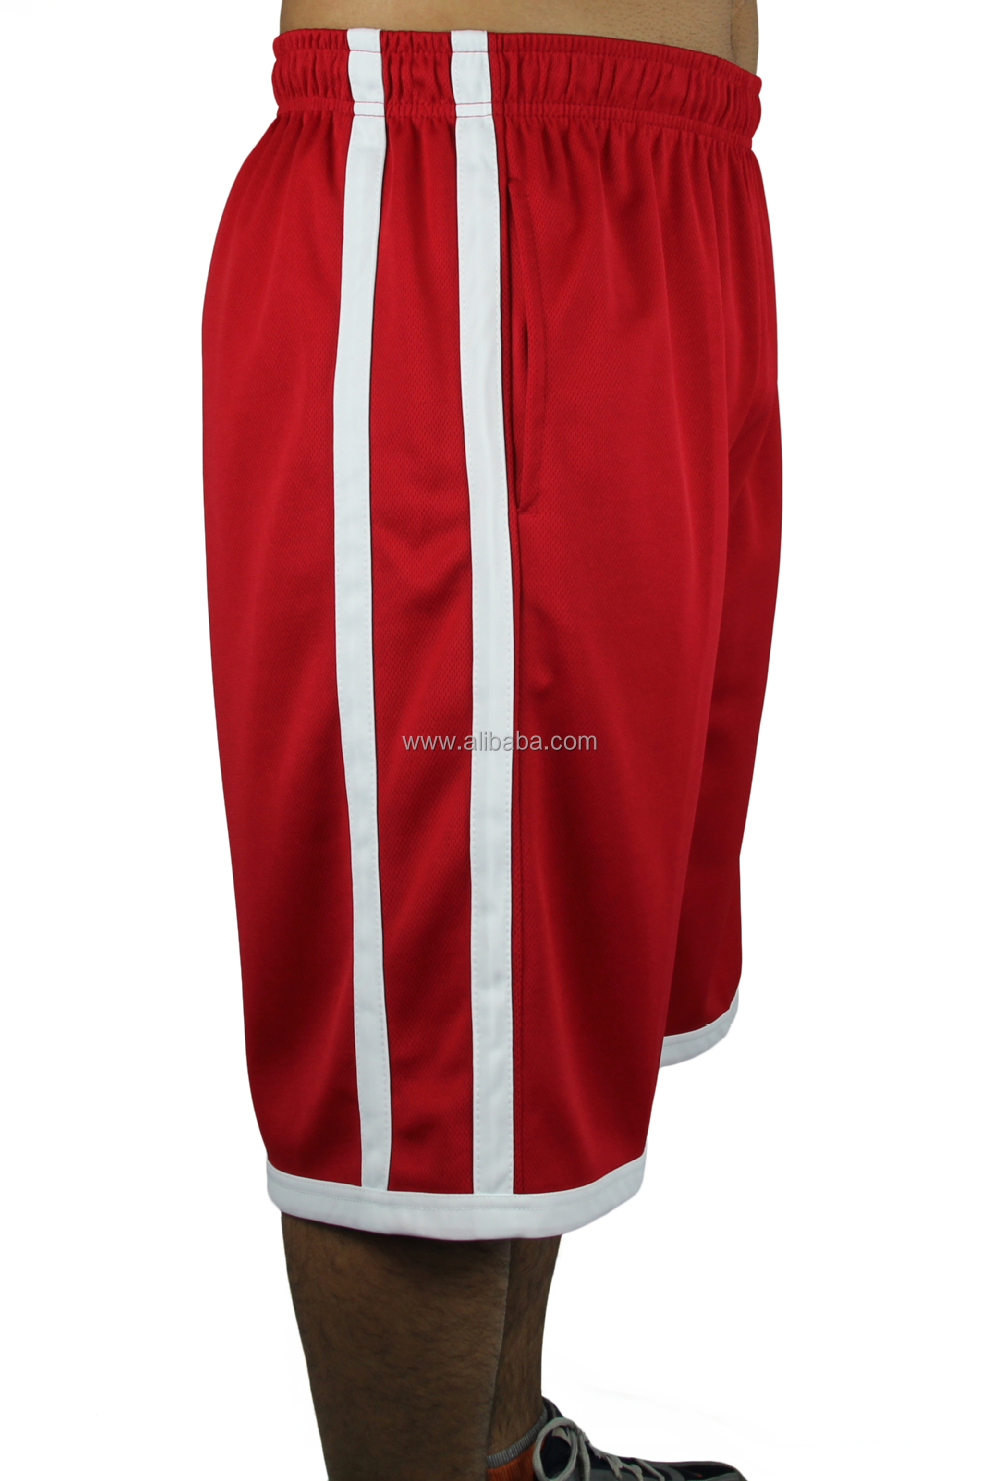 Twin Stripes Basketball Shorts